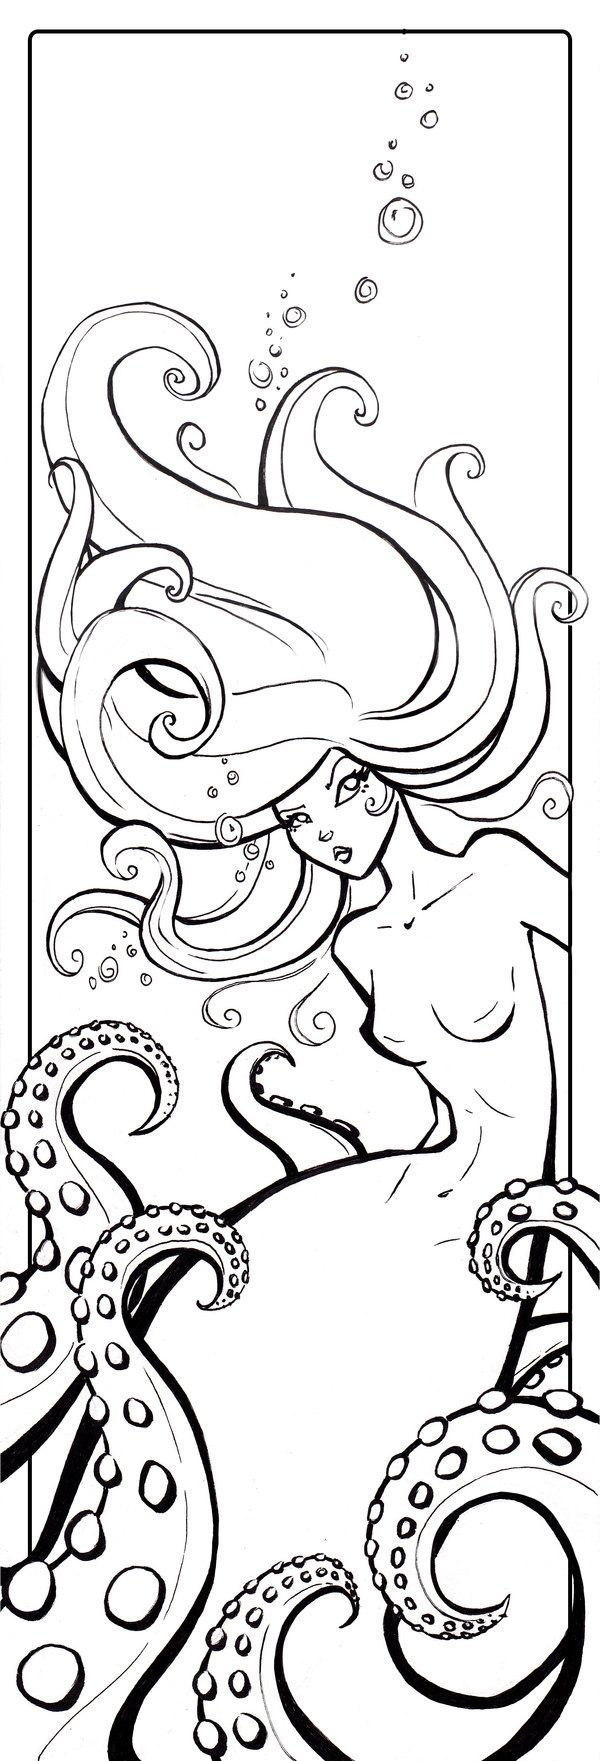 288 best yla mermaids images on pinterest coloring books